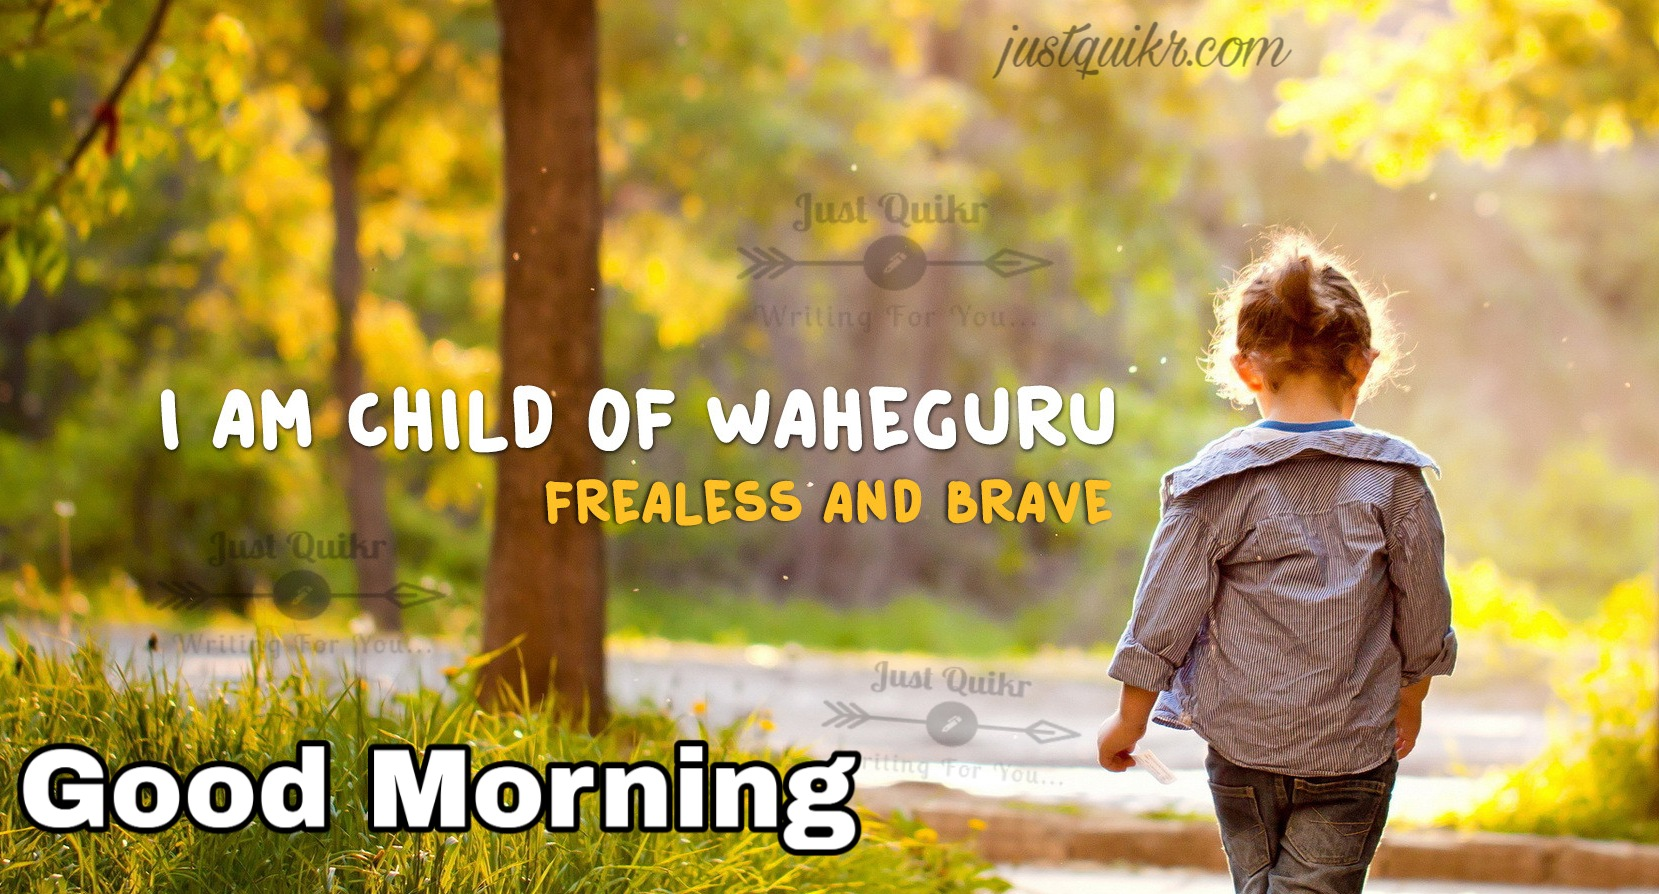 Good Morning WaheGuru Messages Wishes Shayari SMS HD Pics Images Photo Wallpaper for Whatsapp Instagram And Facebook